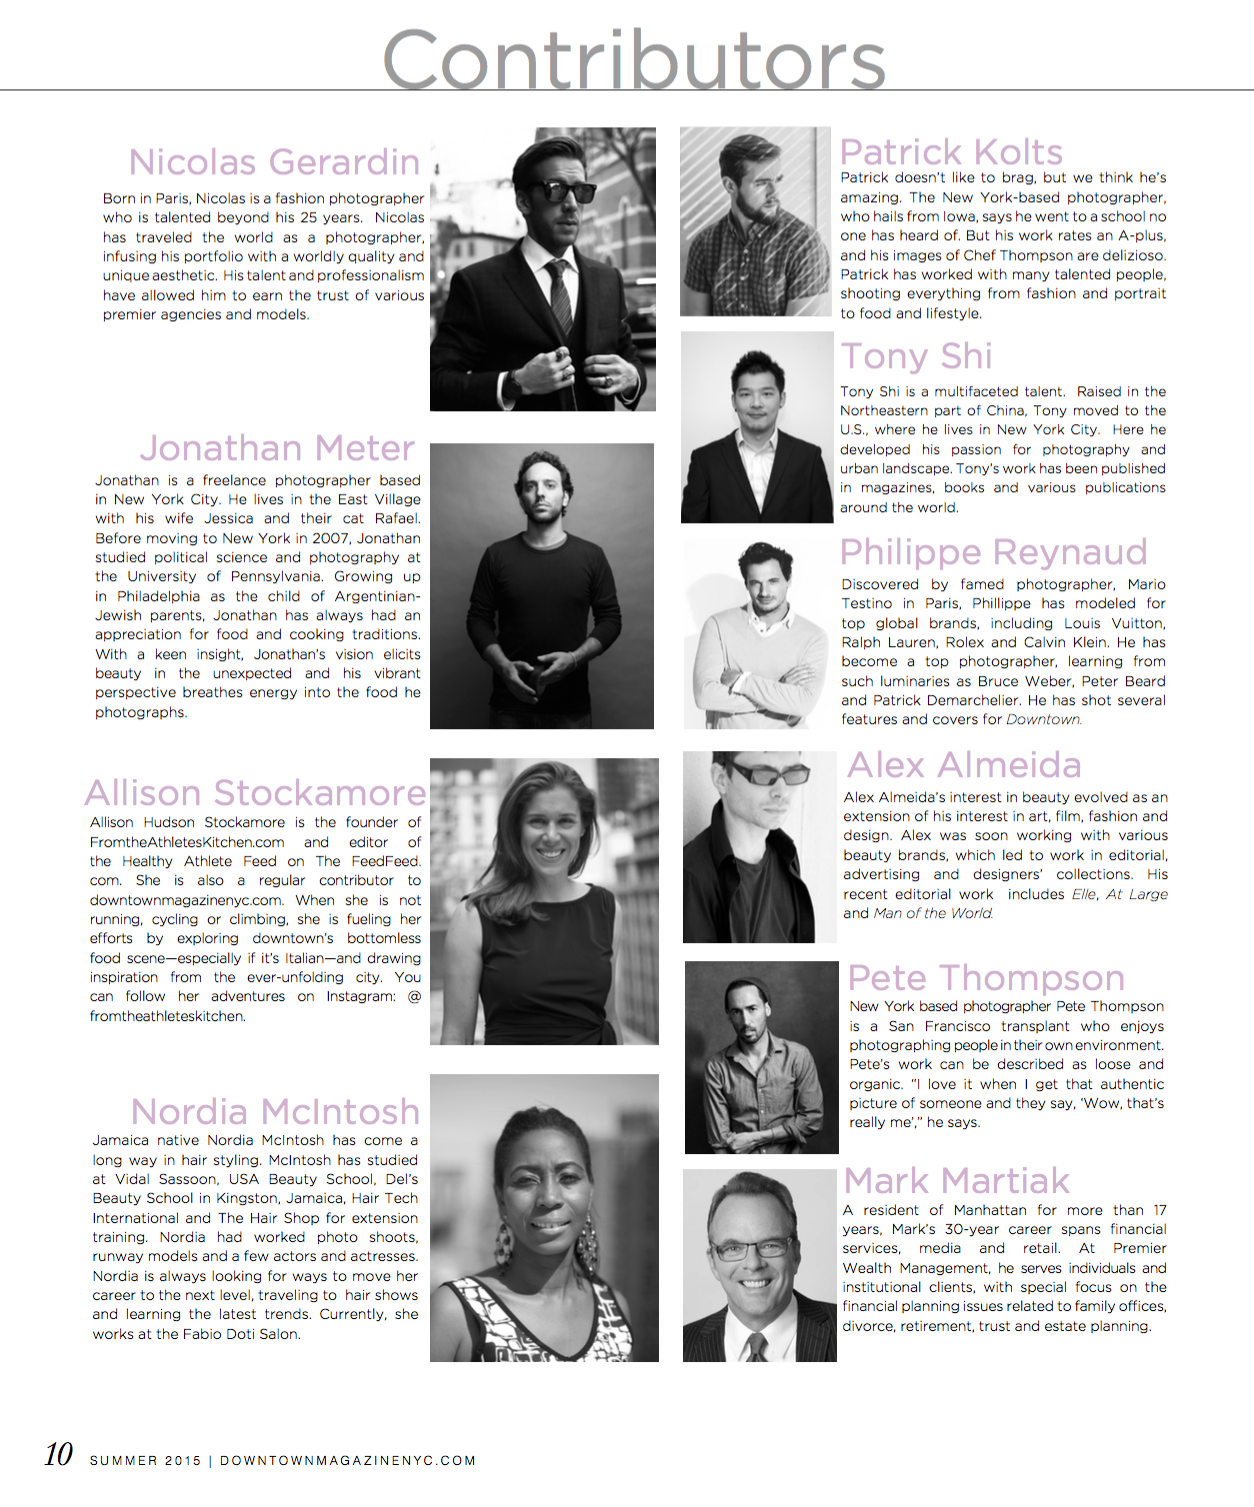 Downtown Magazine Summer 2015 Contributors |